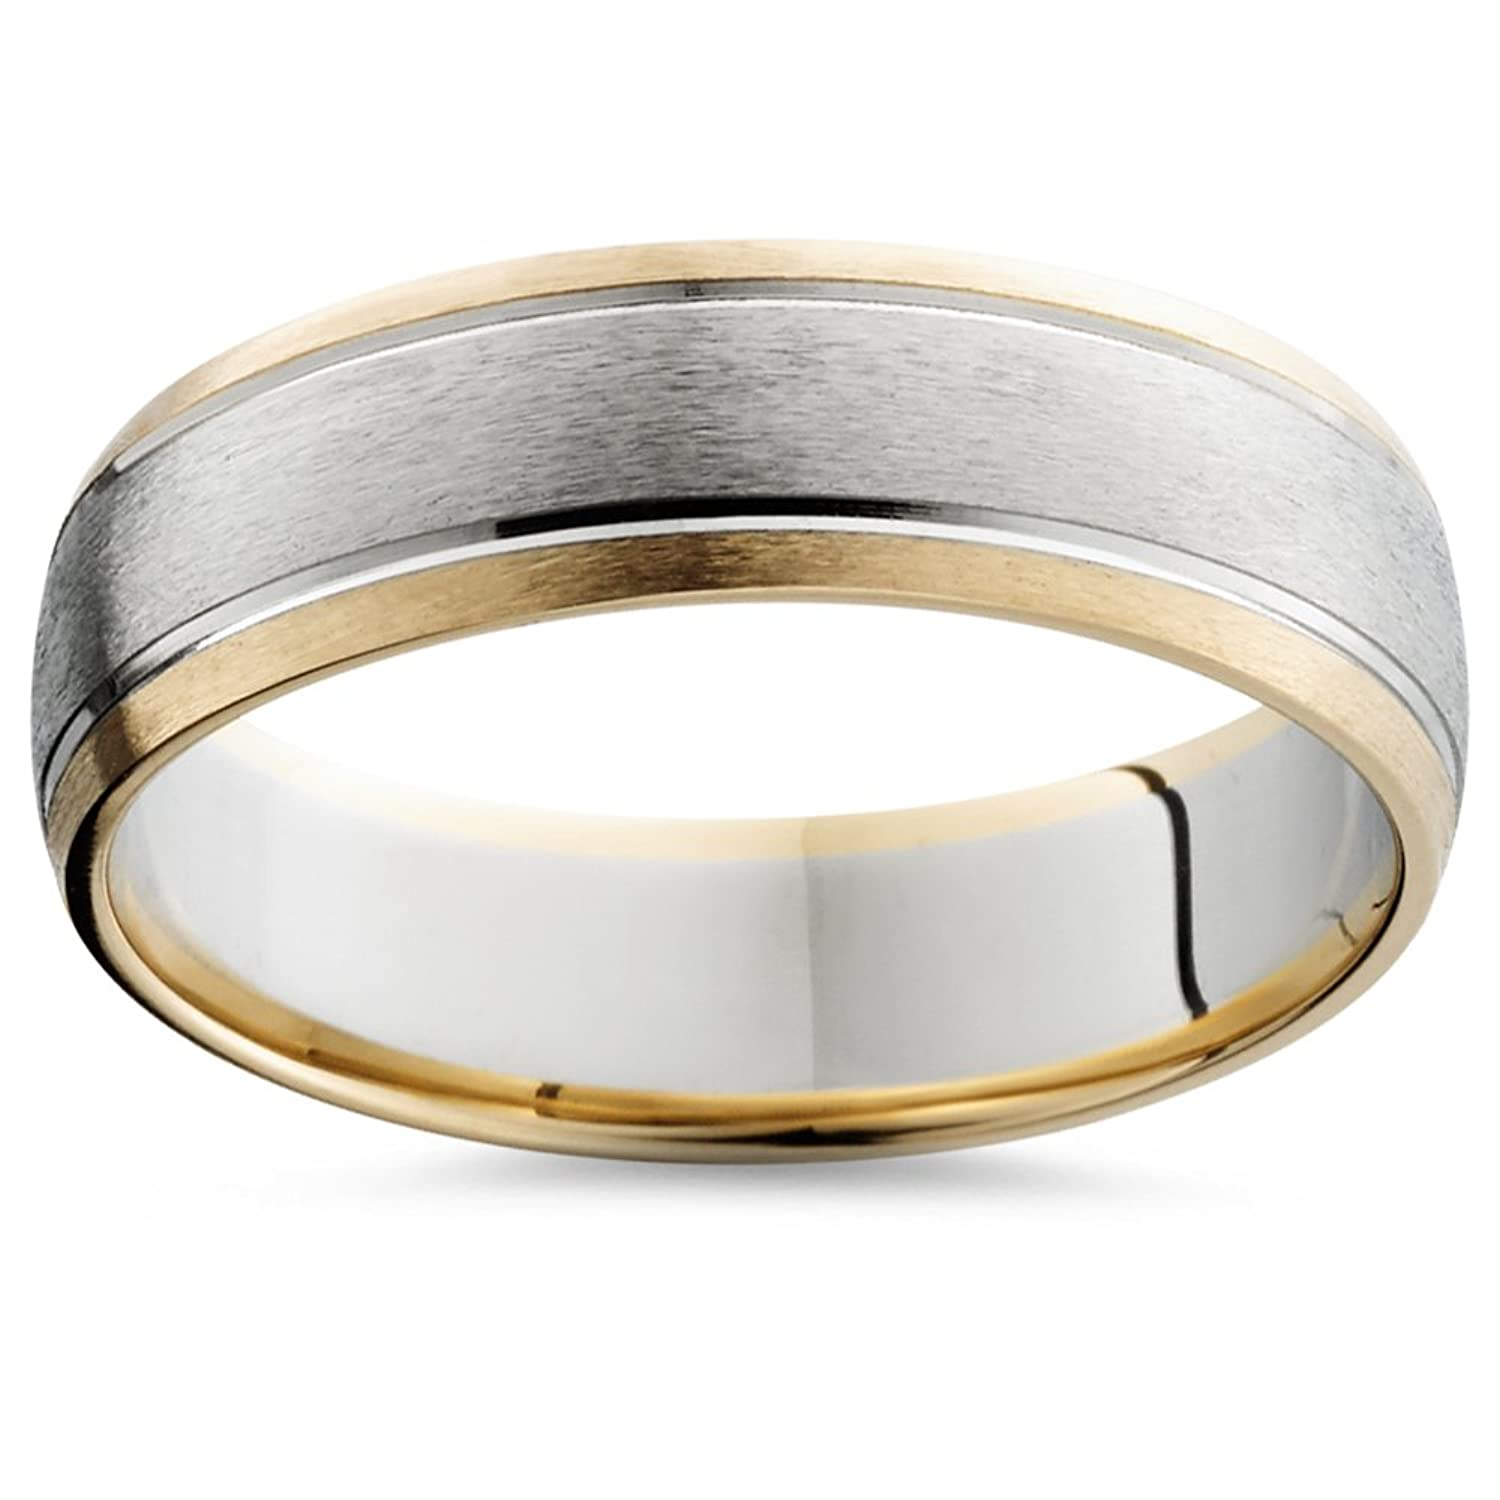 men mens the gold and smooth s rose here shown wedding strip hammered goldsmiths combines a bands with carat bi showcase mccaul of metal white band ring